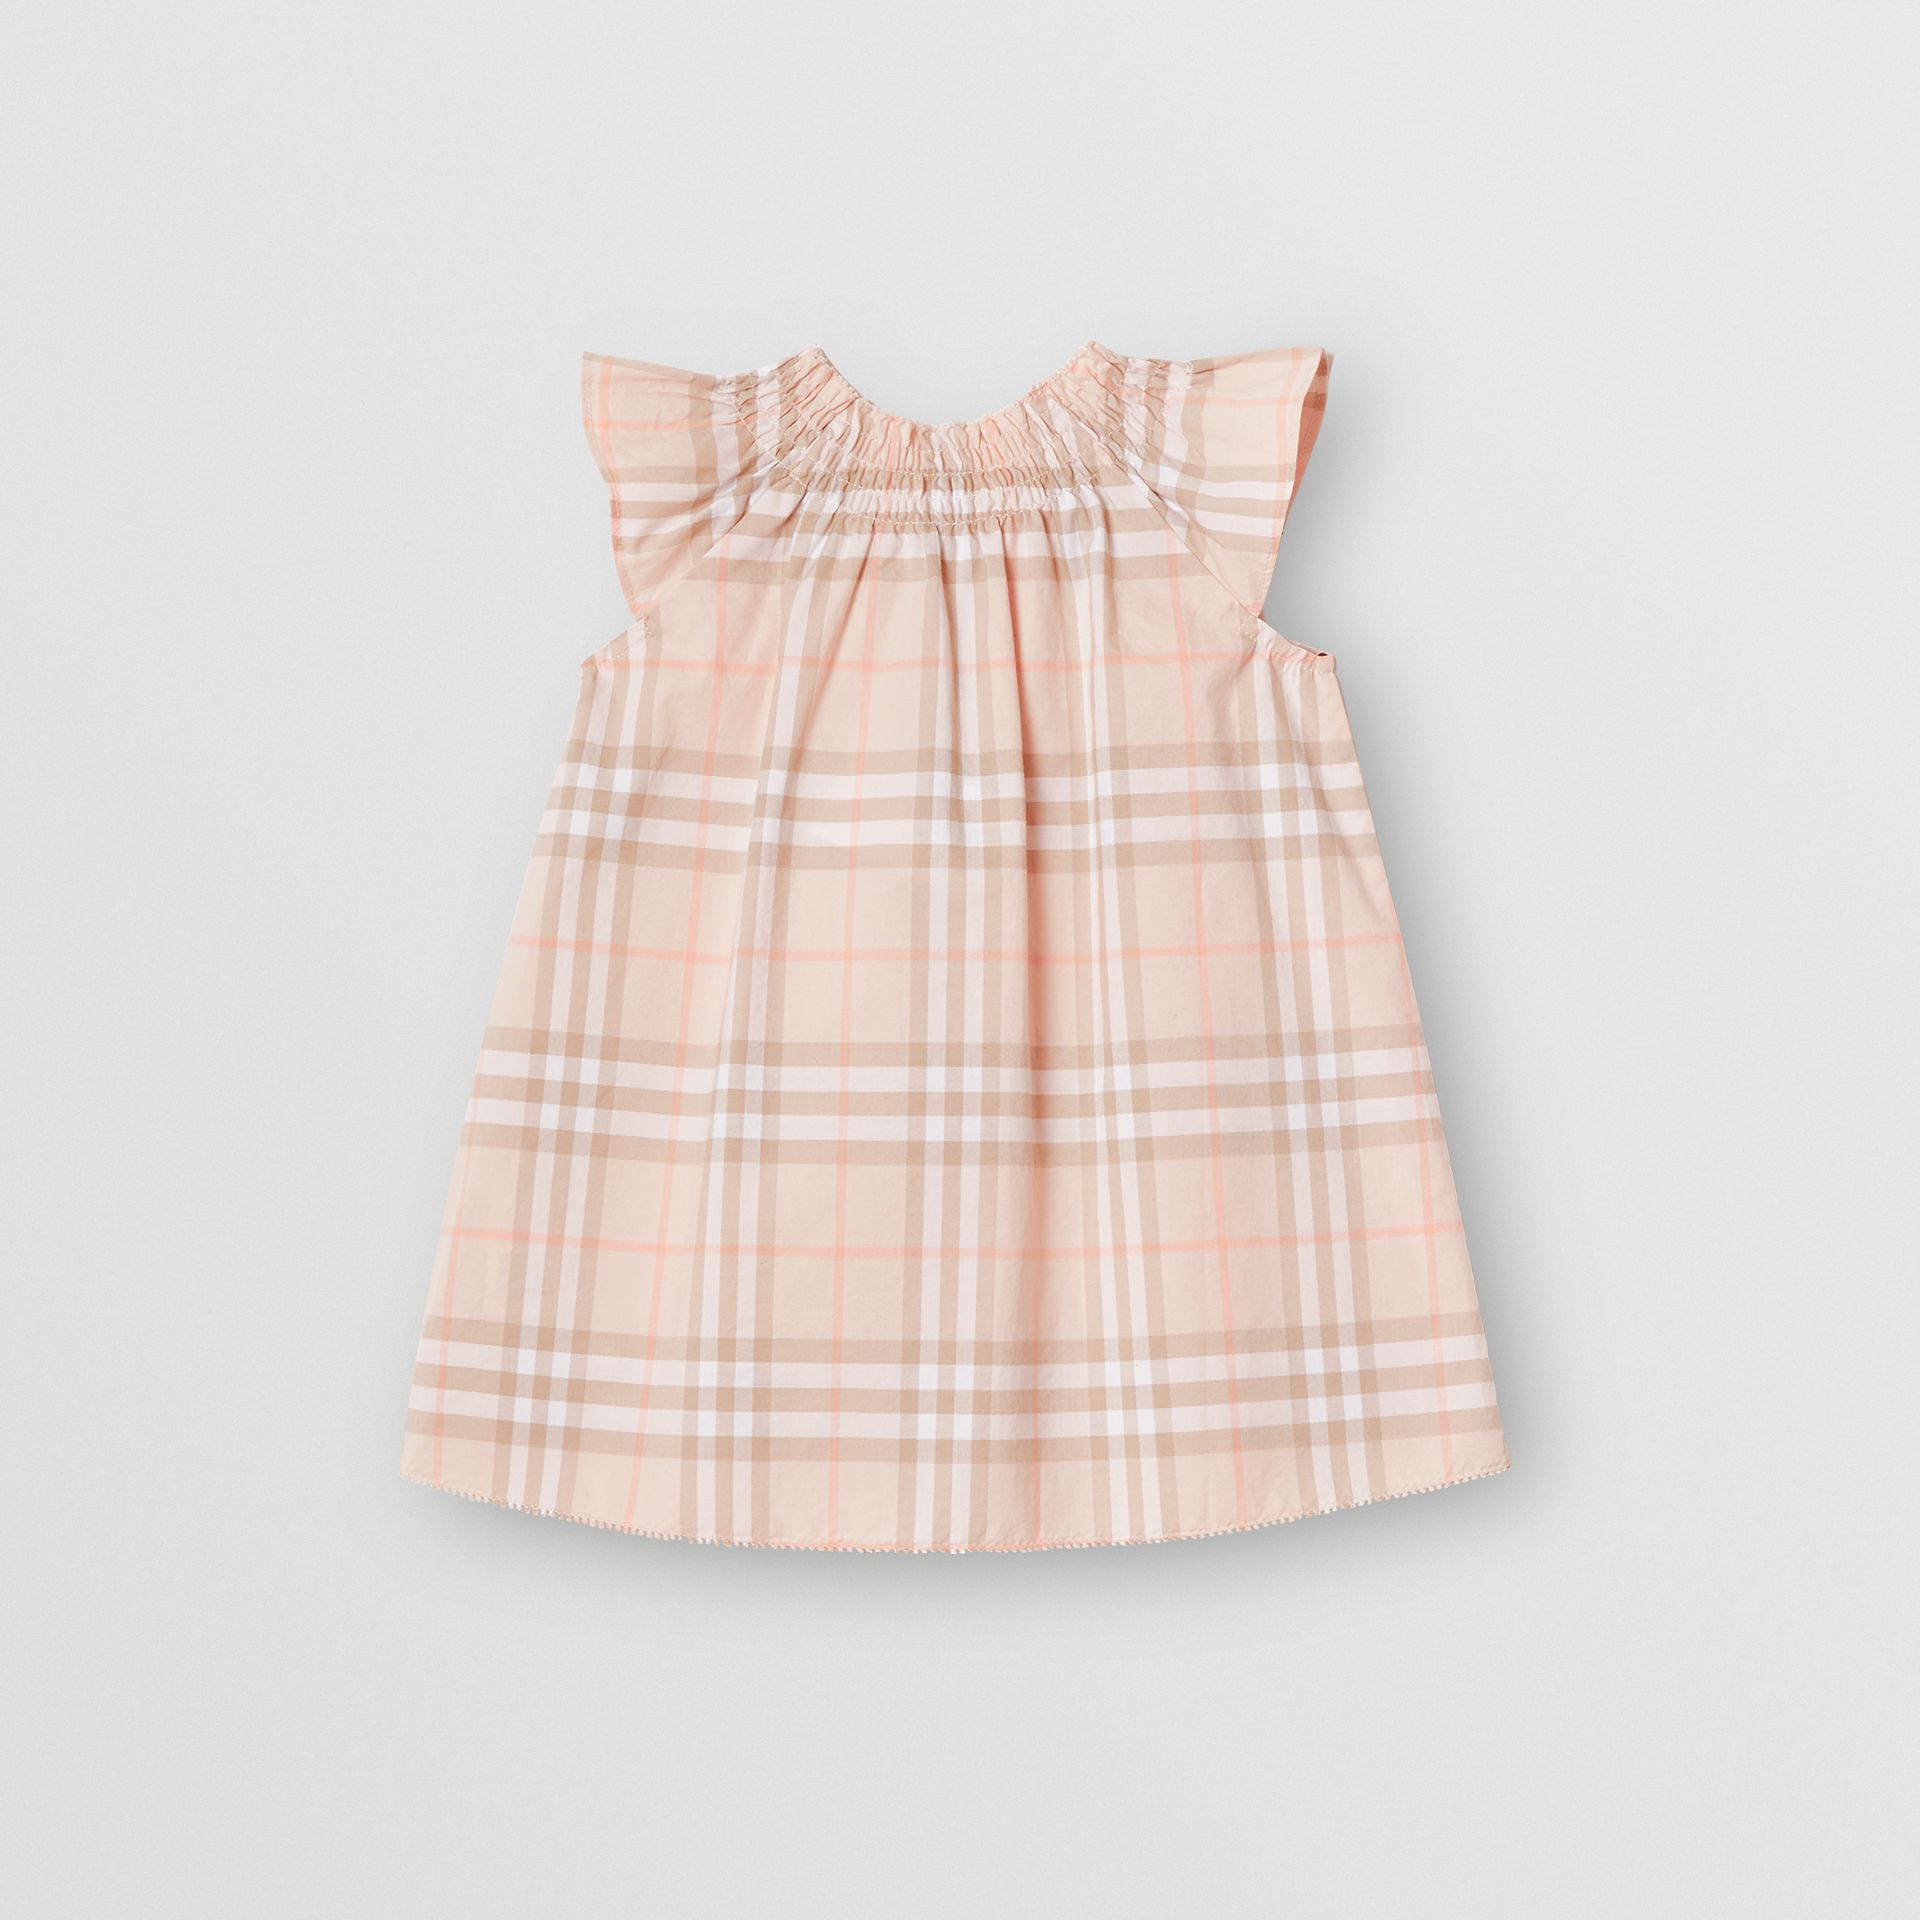 Smocked Vintage Check Cotton Dress in Pale Pink Apricot - Children | Burberry United States - gallery image 3